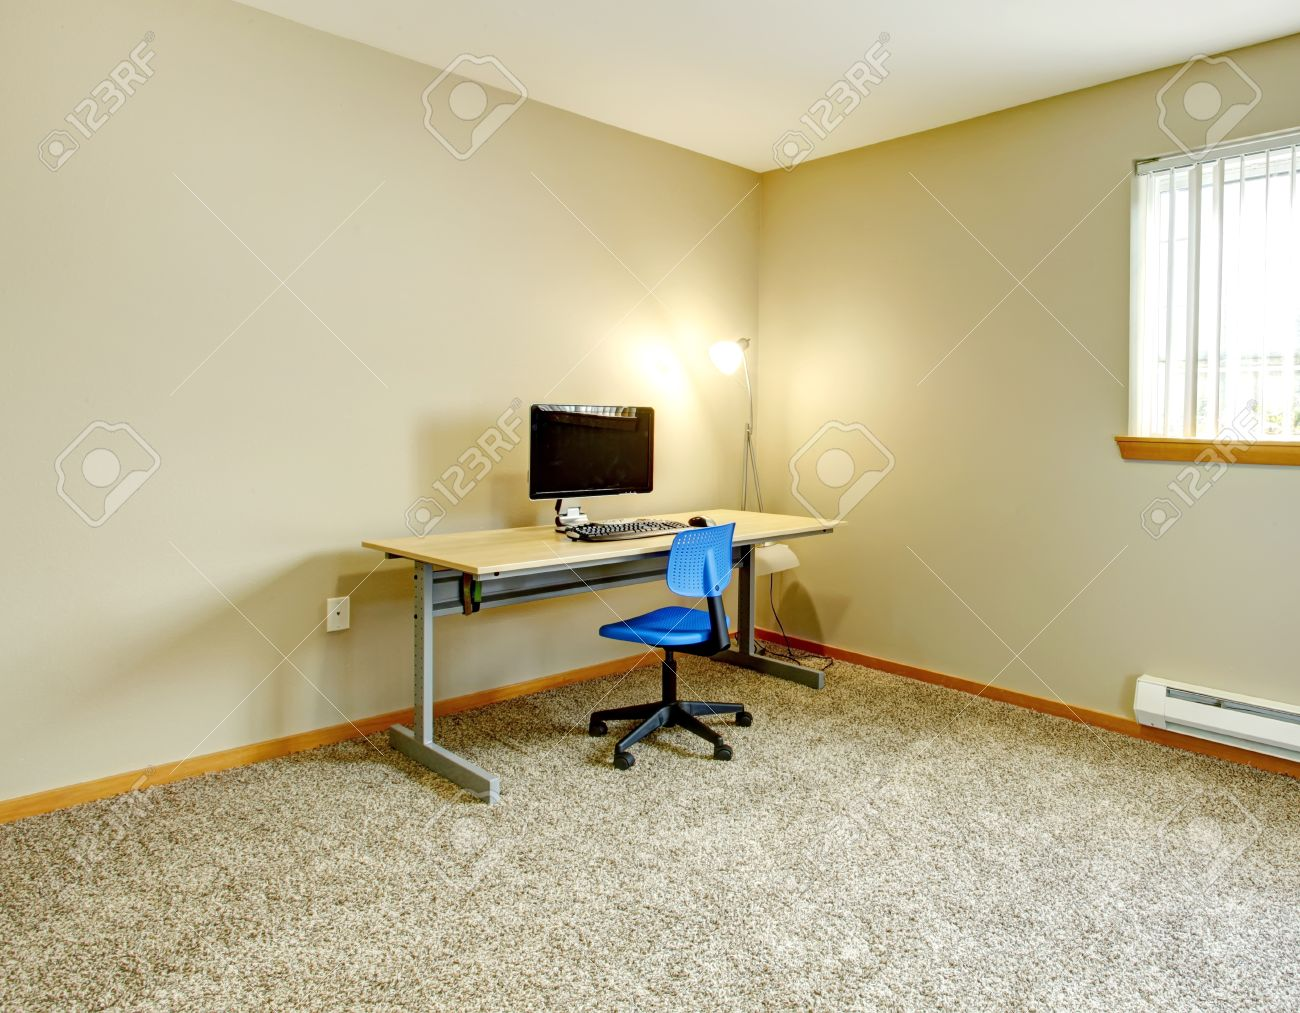 Big Ivory Office Room With Window And Beige Carpet Floor. Furnished ...